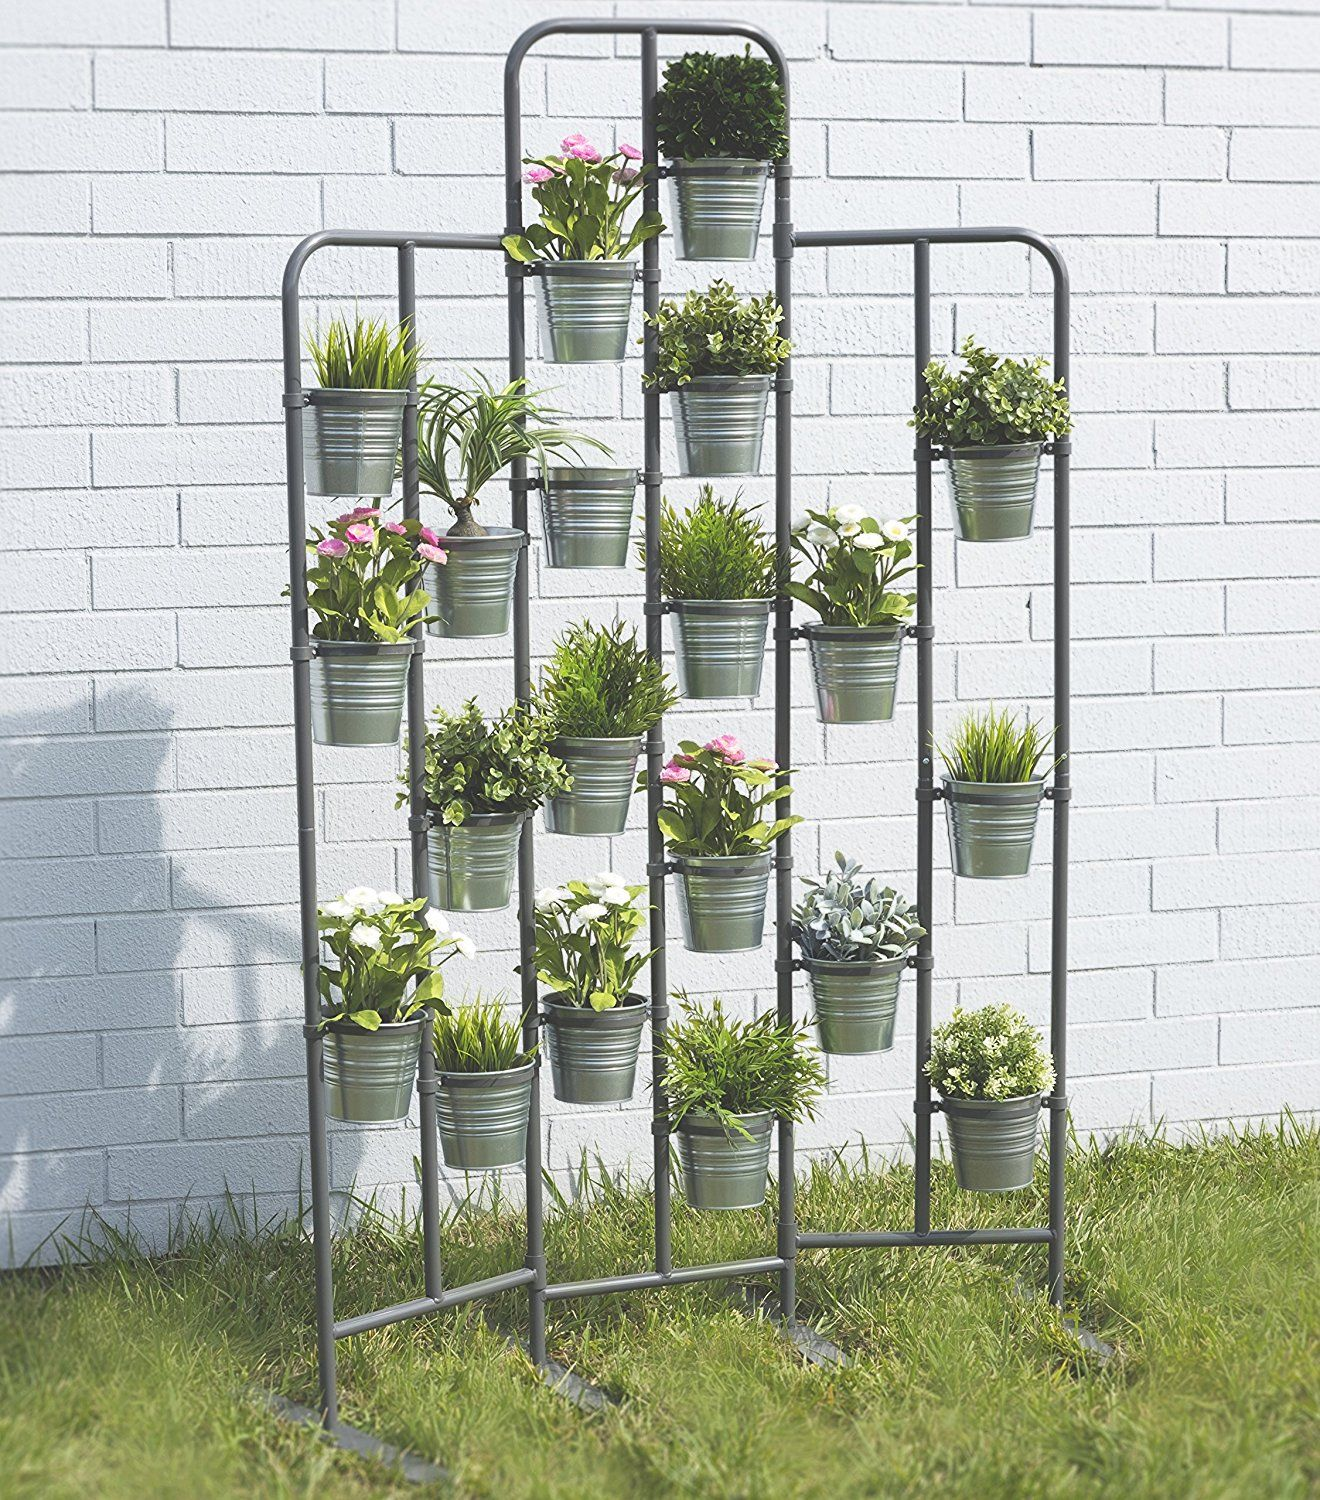 Amazon.com: Tall Metal Plant Planter Stand 20 Tiers ...